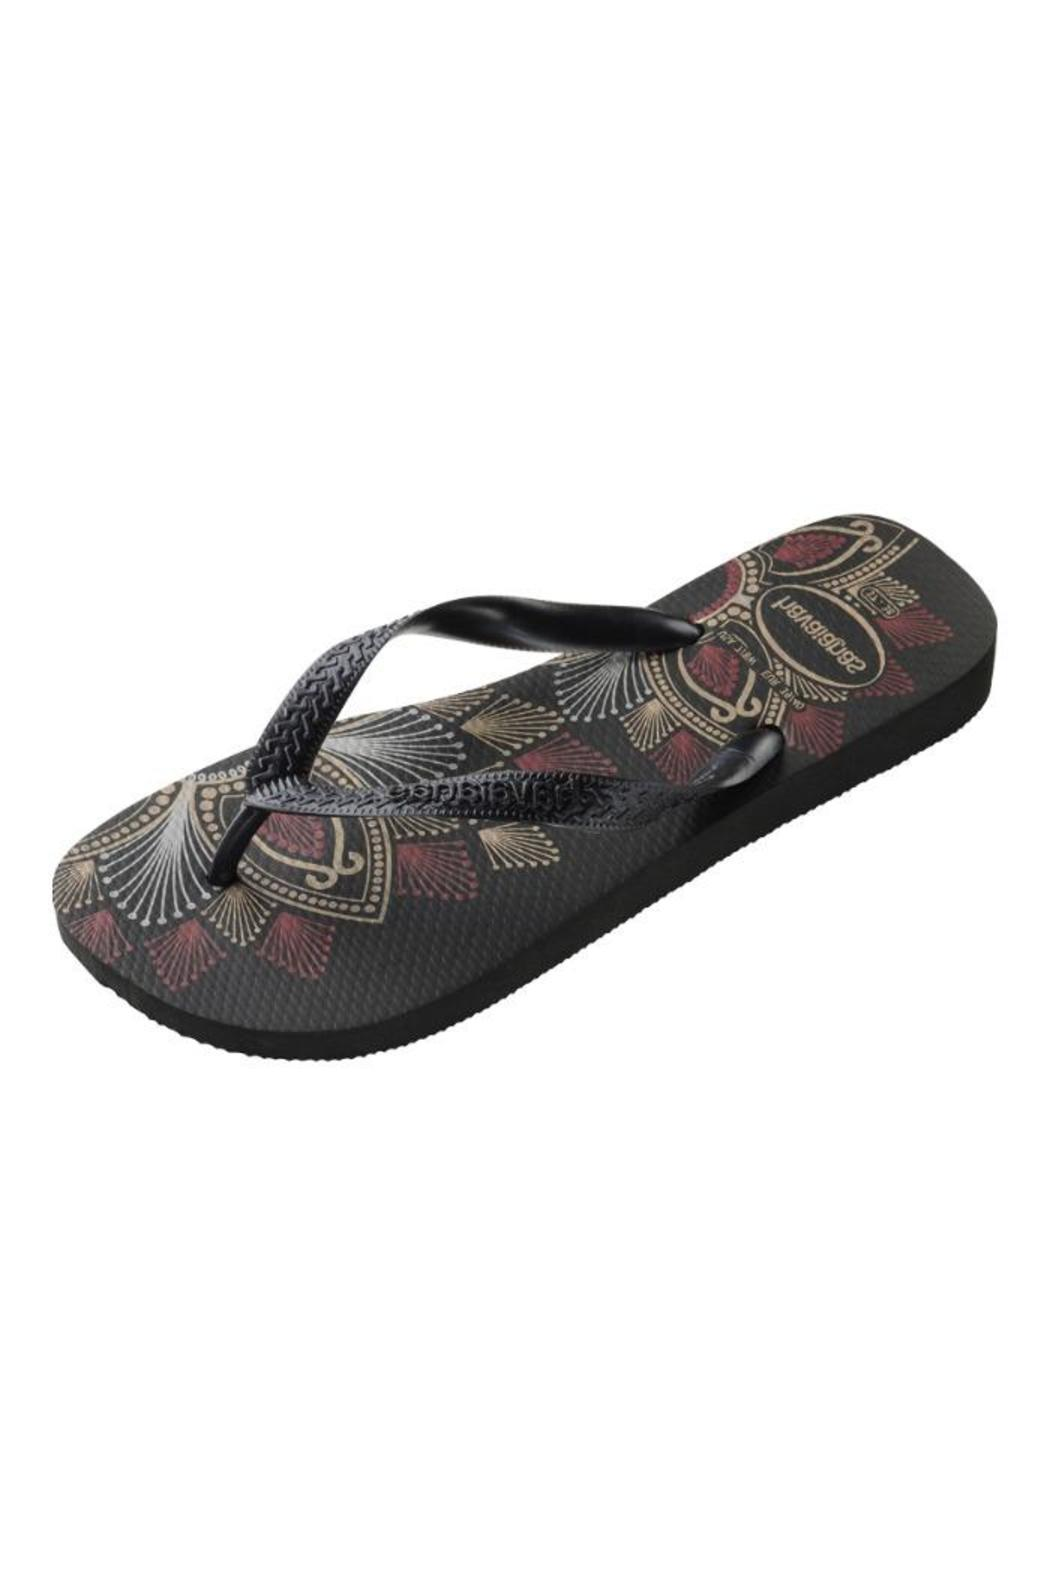 60bcd58af3019e Havaianas Spring Sandal from Tennessee by Lori s Family Footwear ...